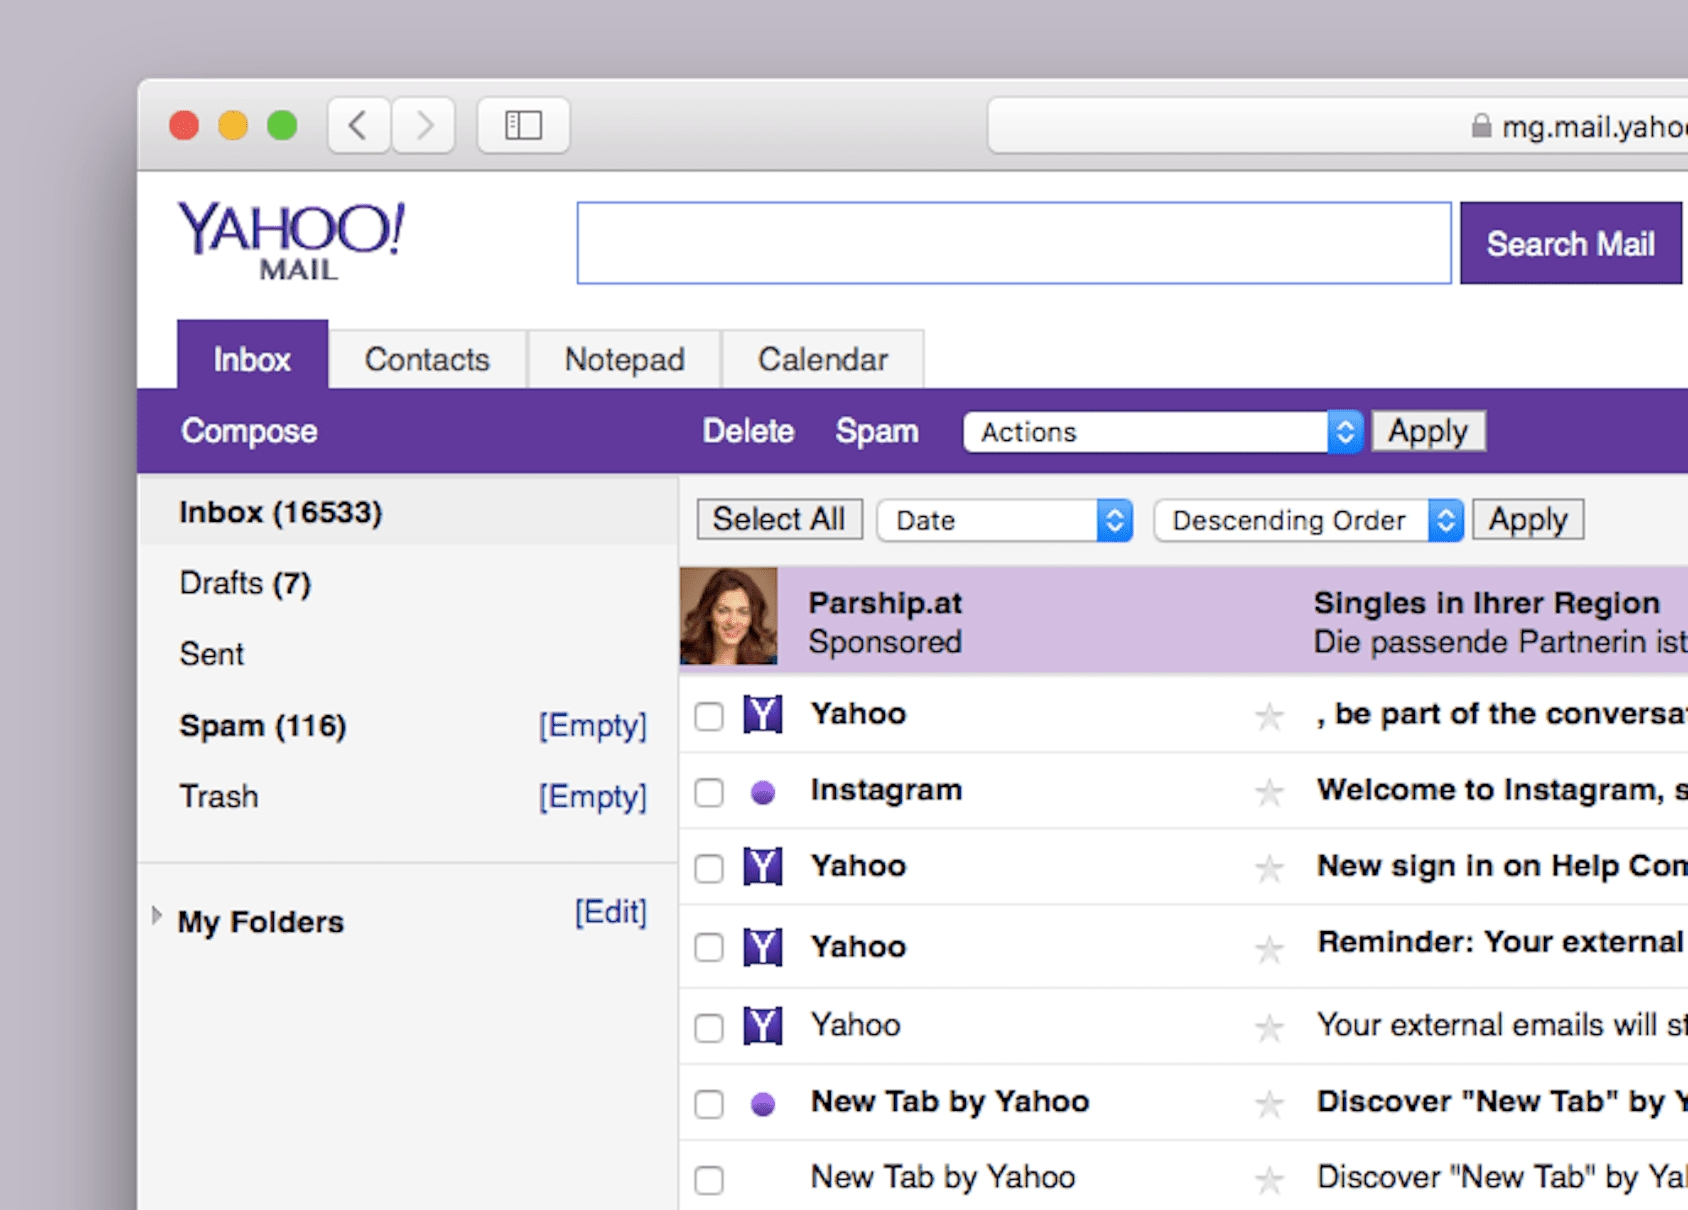 How To Switch To Yahoo Mail Basic_No Calendar Icon In Yahoo Mail